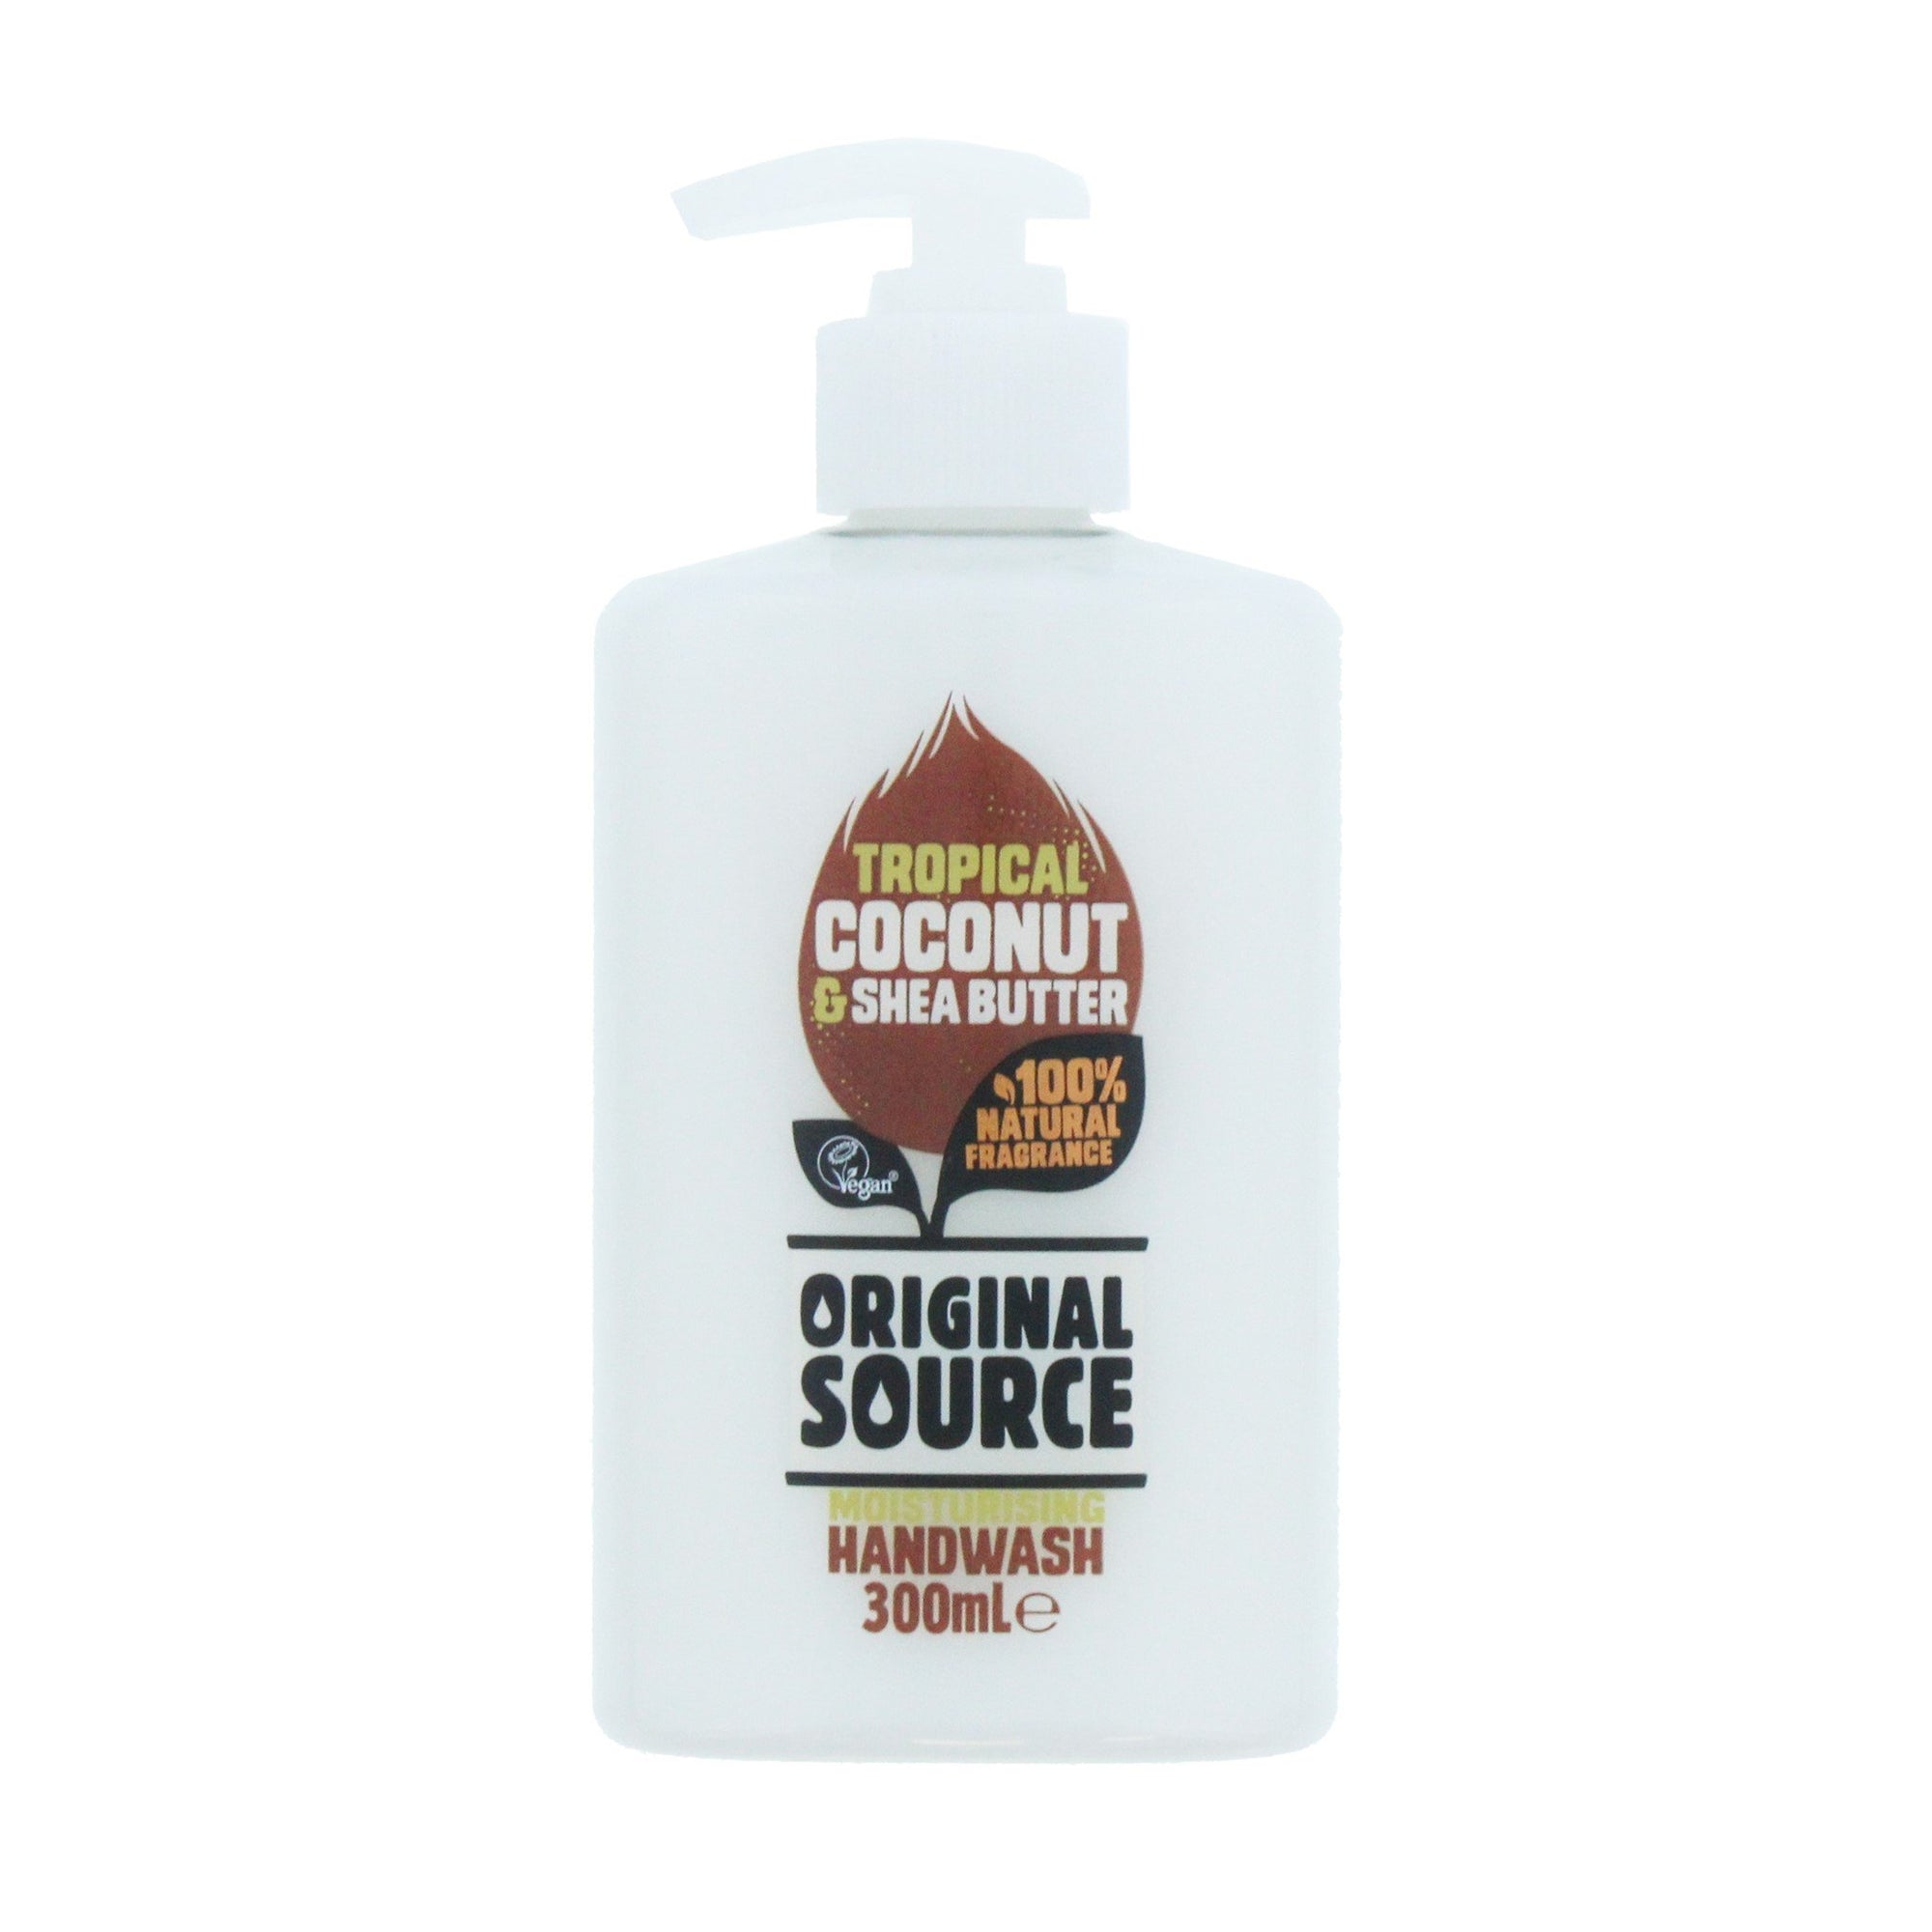 Original Source Handwash Coconut & Shea Butter 300ml